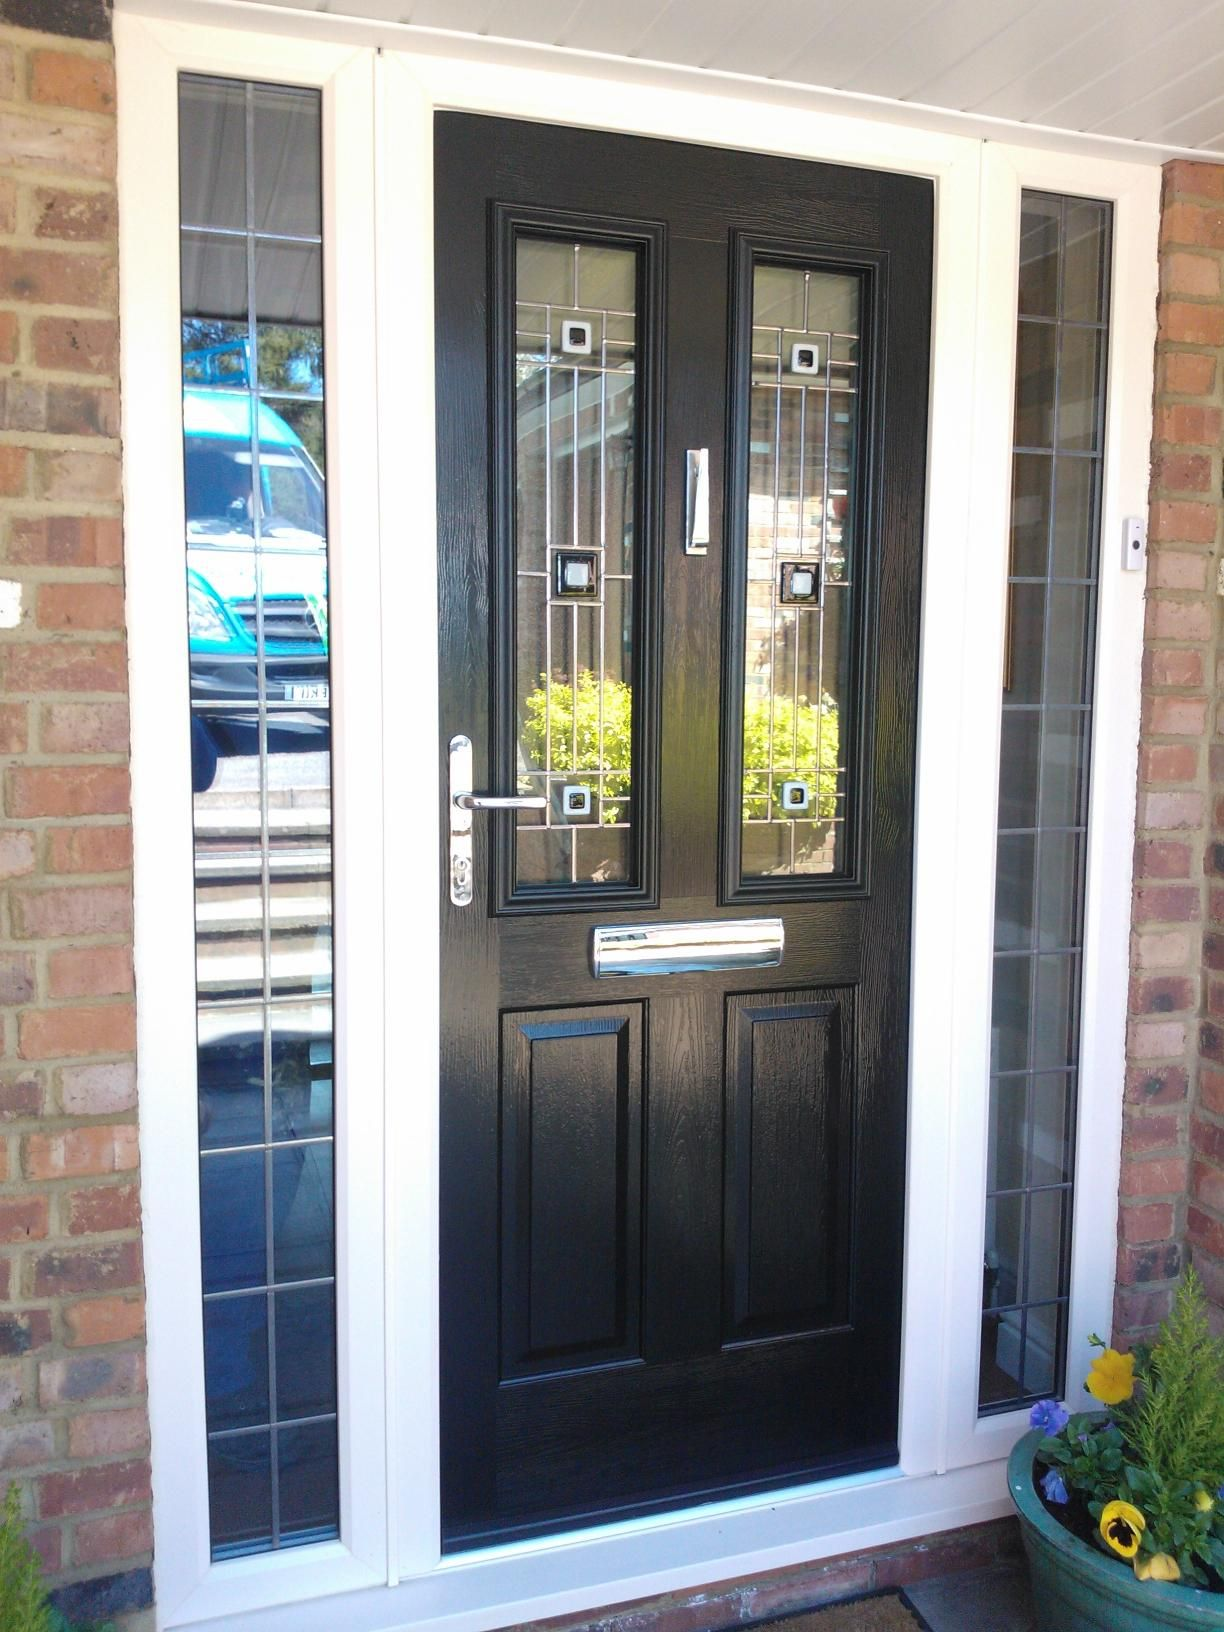 Our Ludlow Timber Core Composite Door Range From The Solidor Collection You Can Design Your